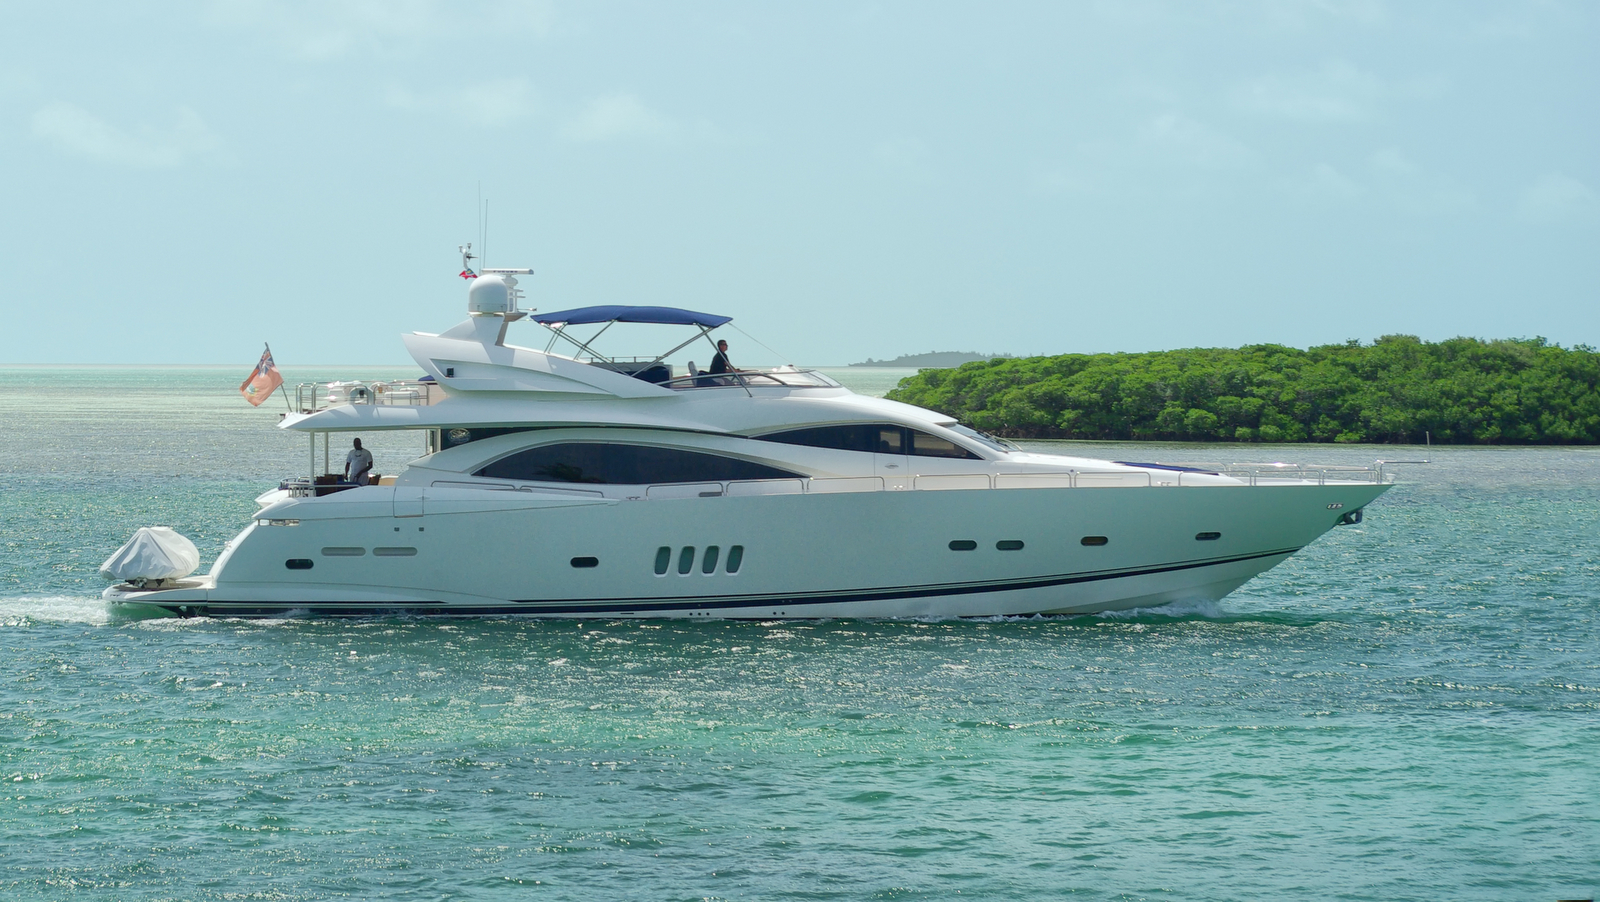 the-sunseeker-motor-yacht-blinder-is-currently-offered-for-sale